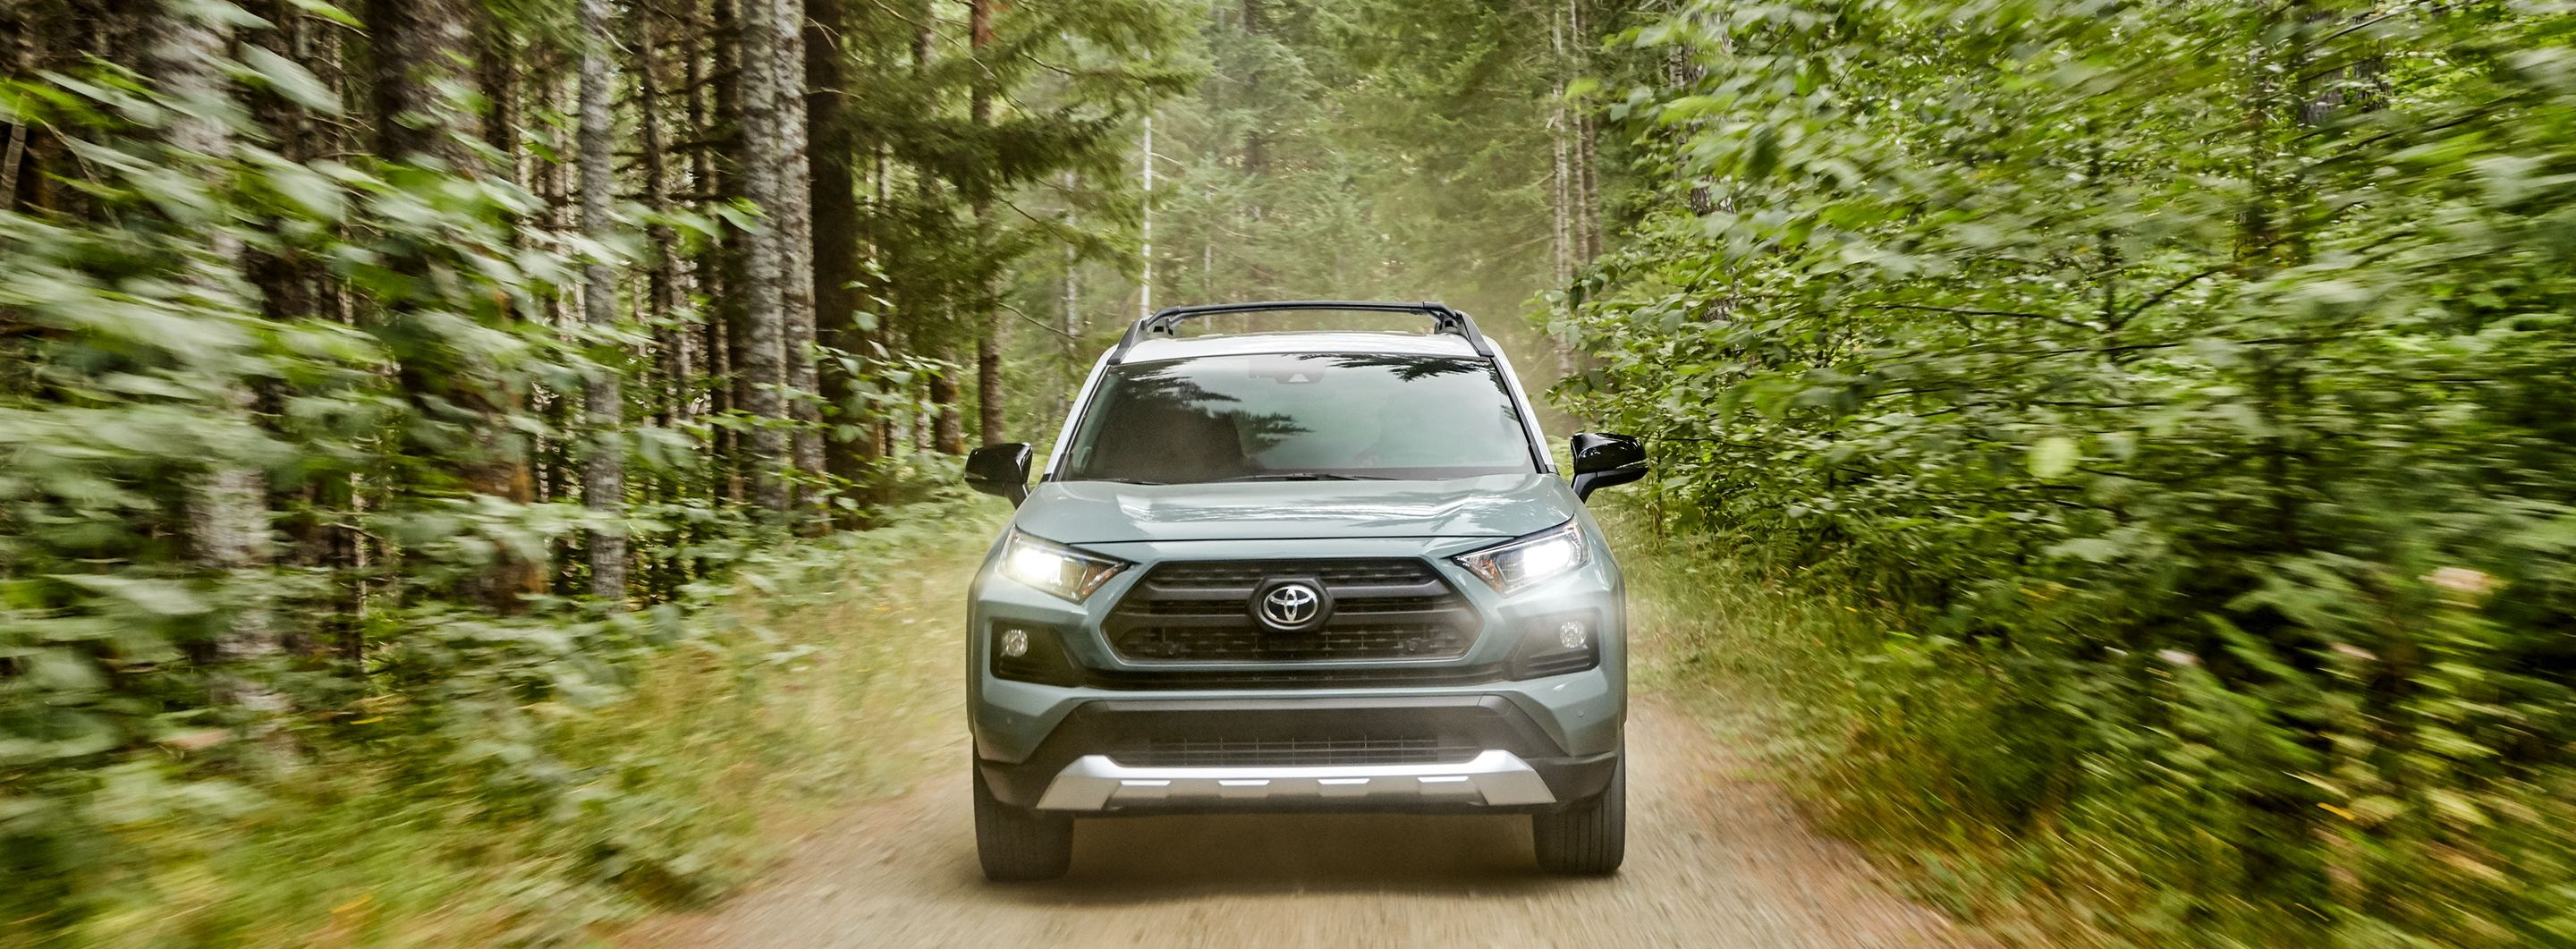 2020 Toyota RAV4 for Sale near Independence, MO, 64055